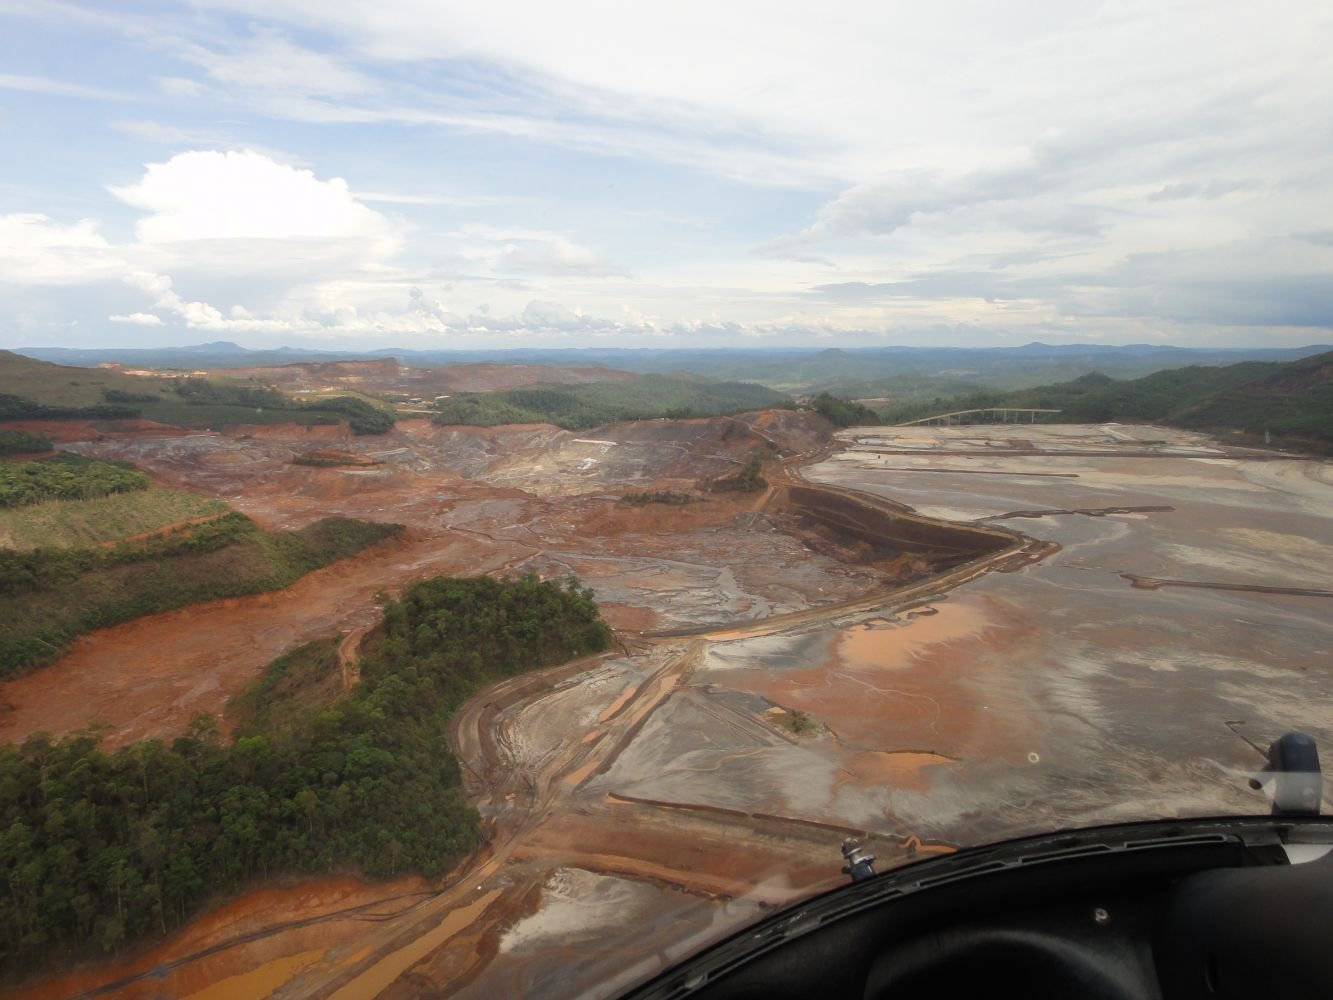 Brazilian Armed Forces Respond to Major Environmental Disaster